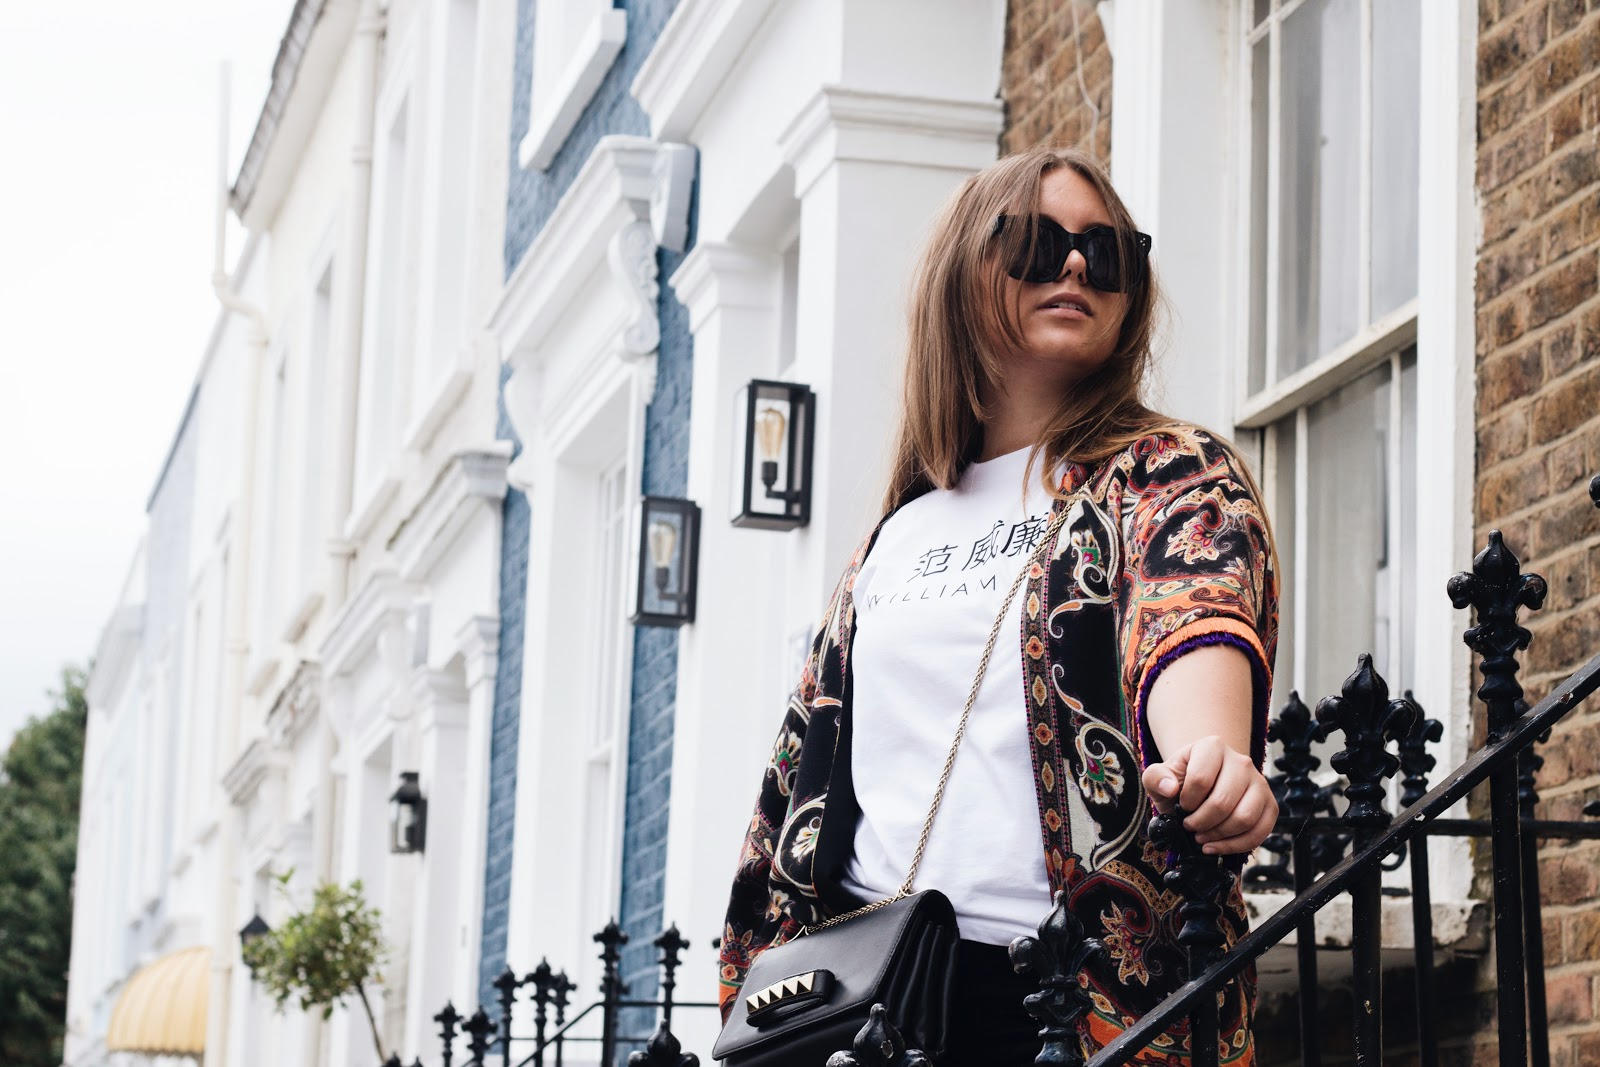 fashion blogger dominique candido wearing etro jacket poncho, celine tilda sunglasses, william fan t shirt, citizens of humanity jeans, valentino va va voom bag and balenciaga speed runners